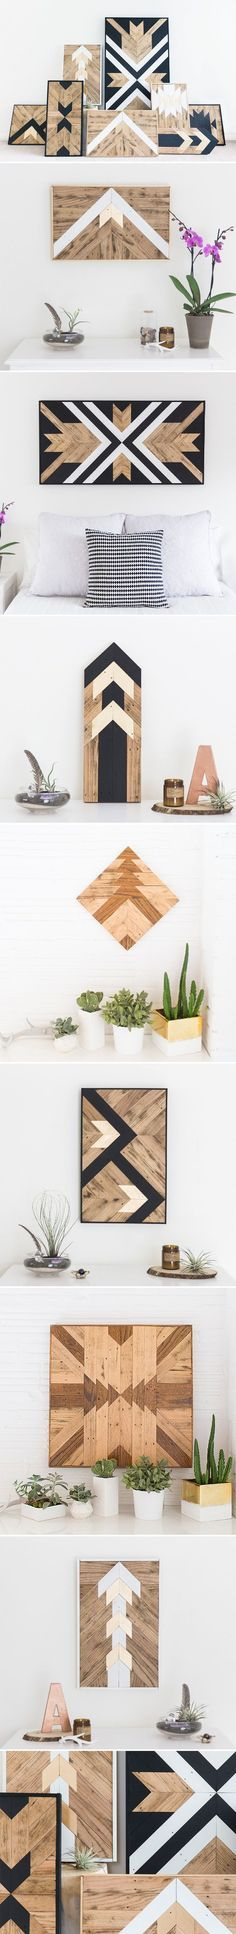 reclaimed wood (from an old oak floor in houston!) art pieces by bri land <3: